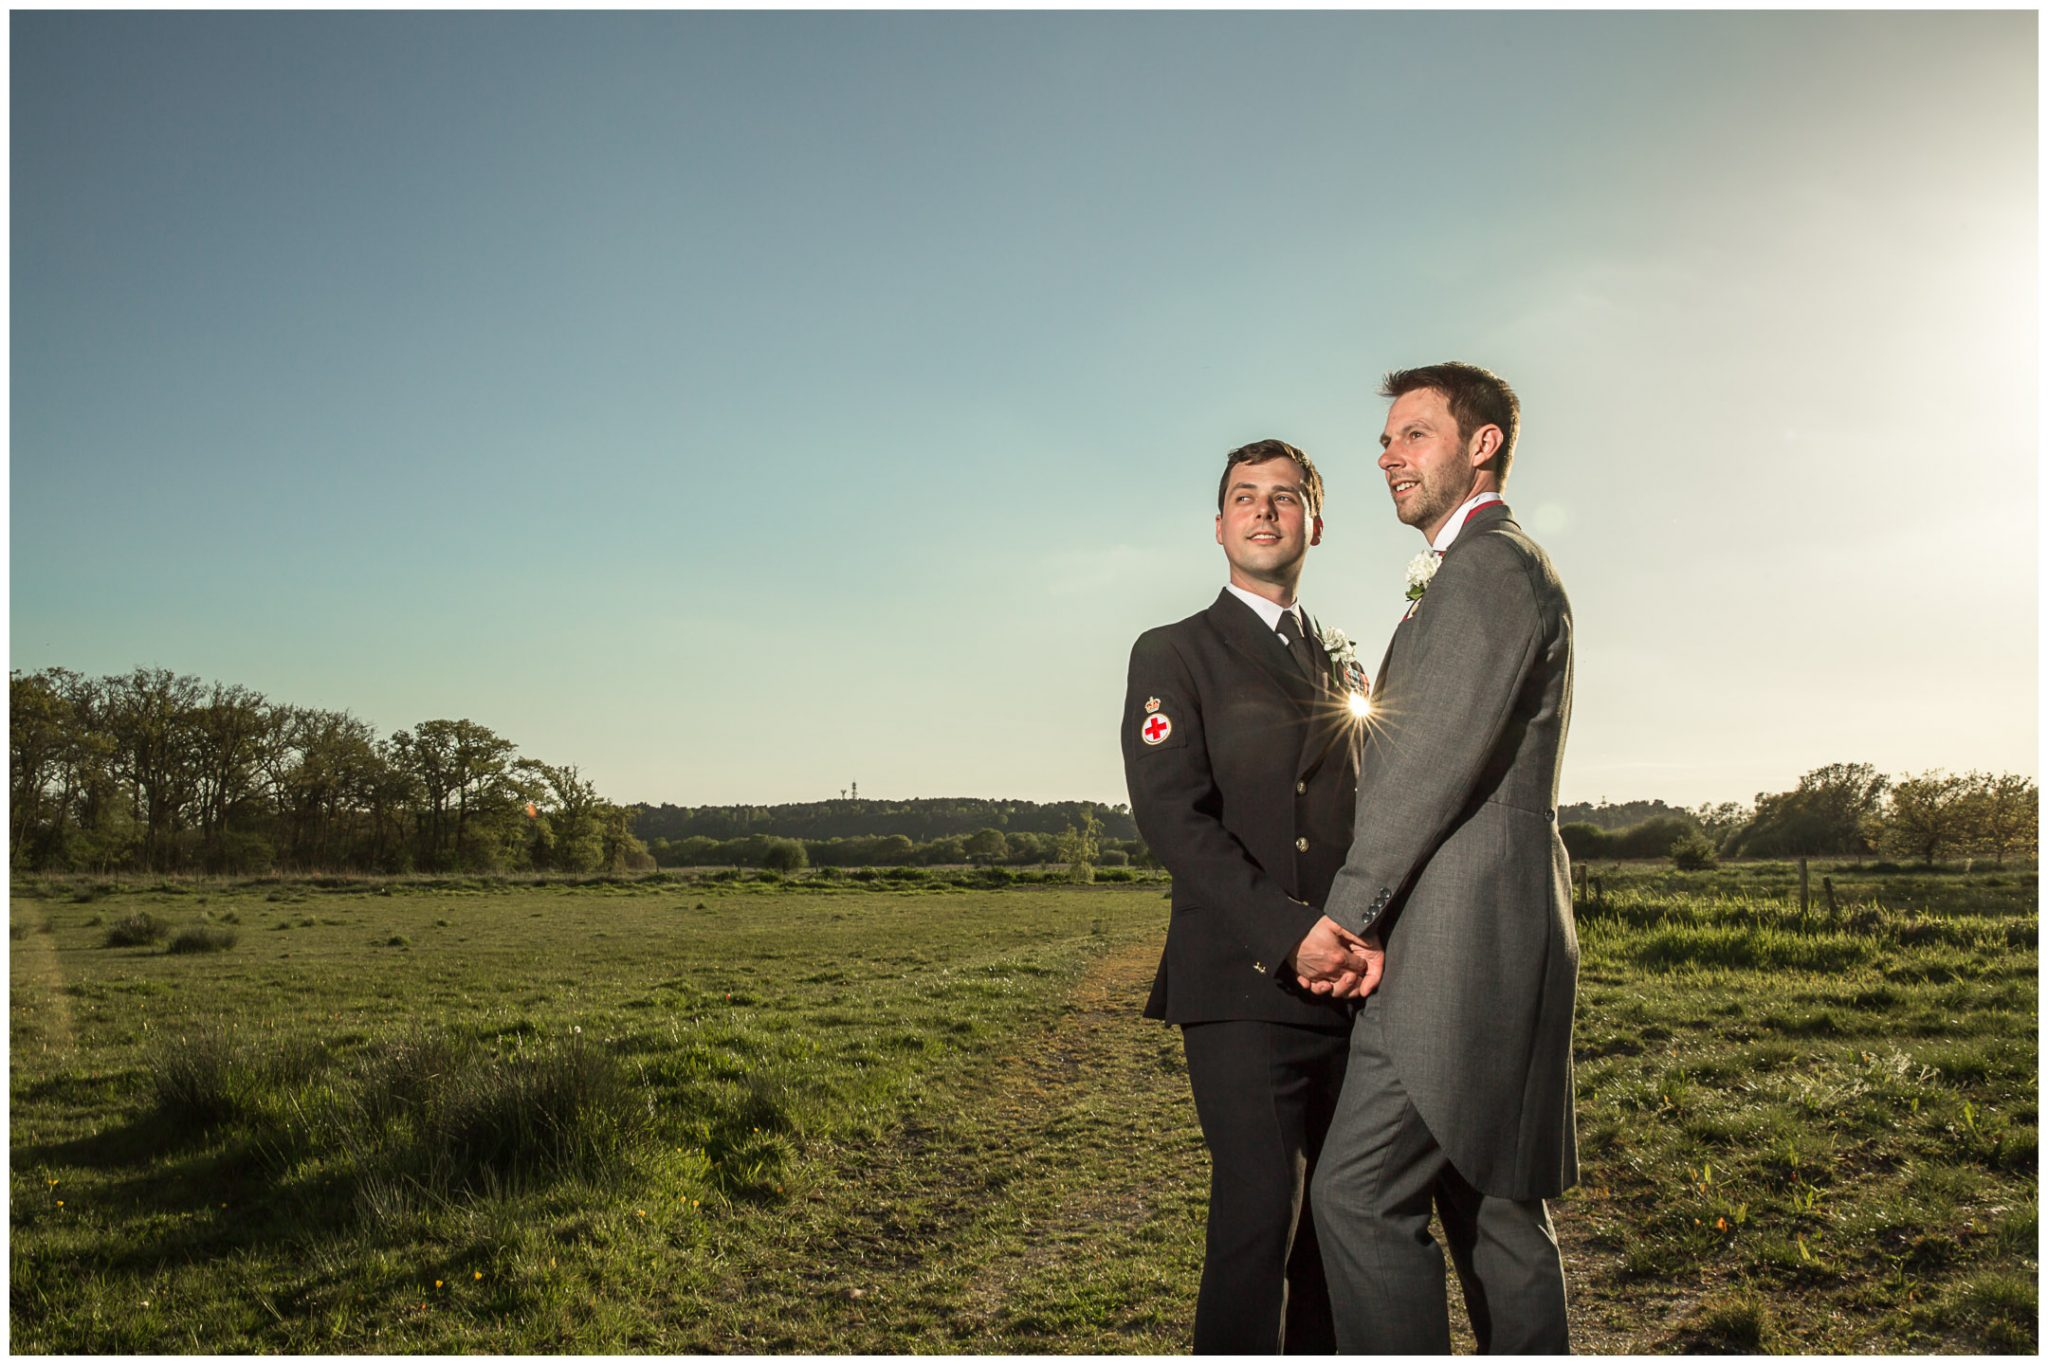 Sopley wedding photographer couple portrait in water meadows